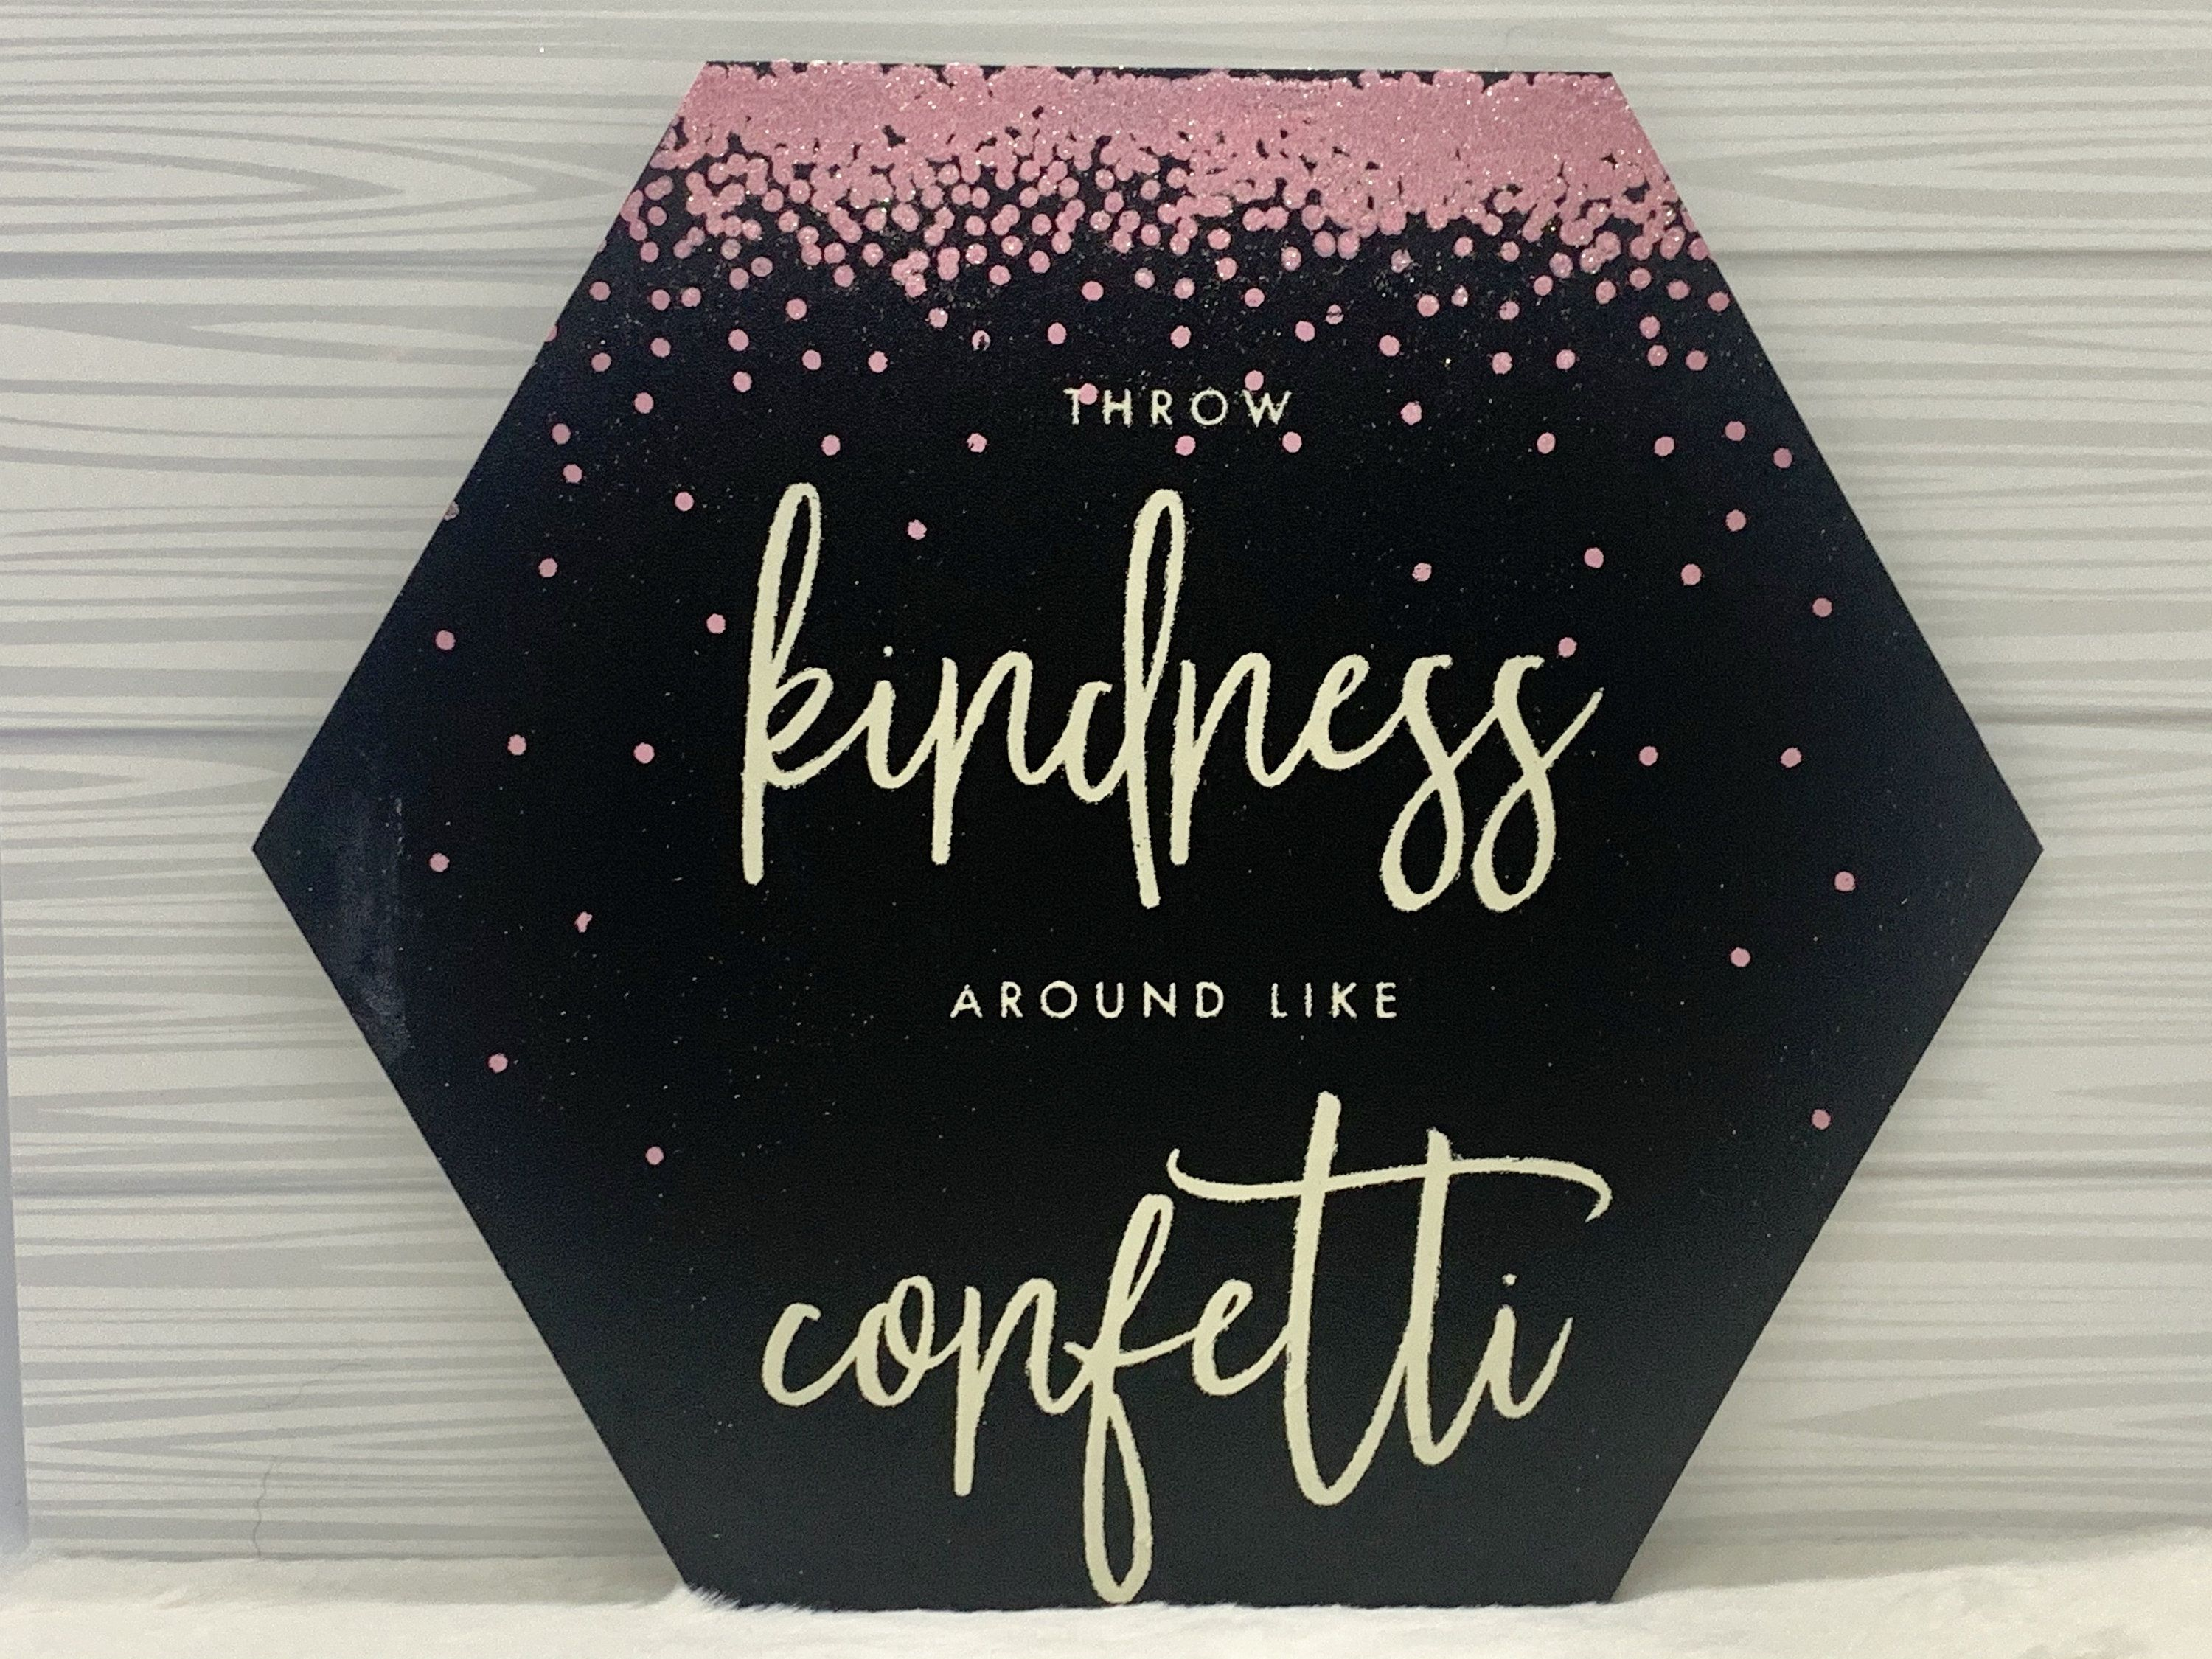 Throw Kindness Around Like Confetti Sign/Picture | Home Decor | Wall Art | Wall Decor | Inspirational